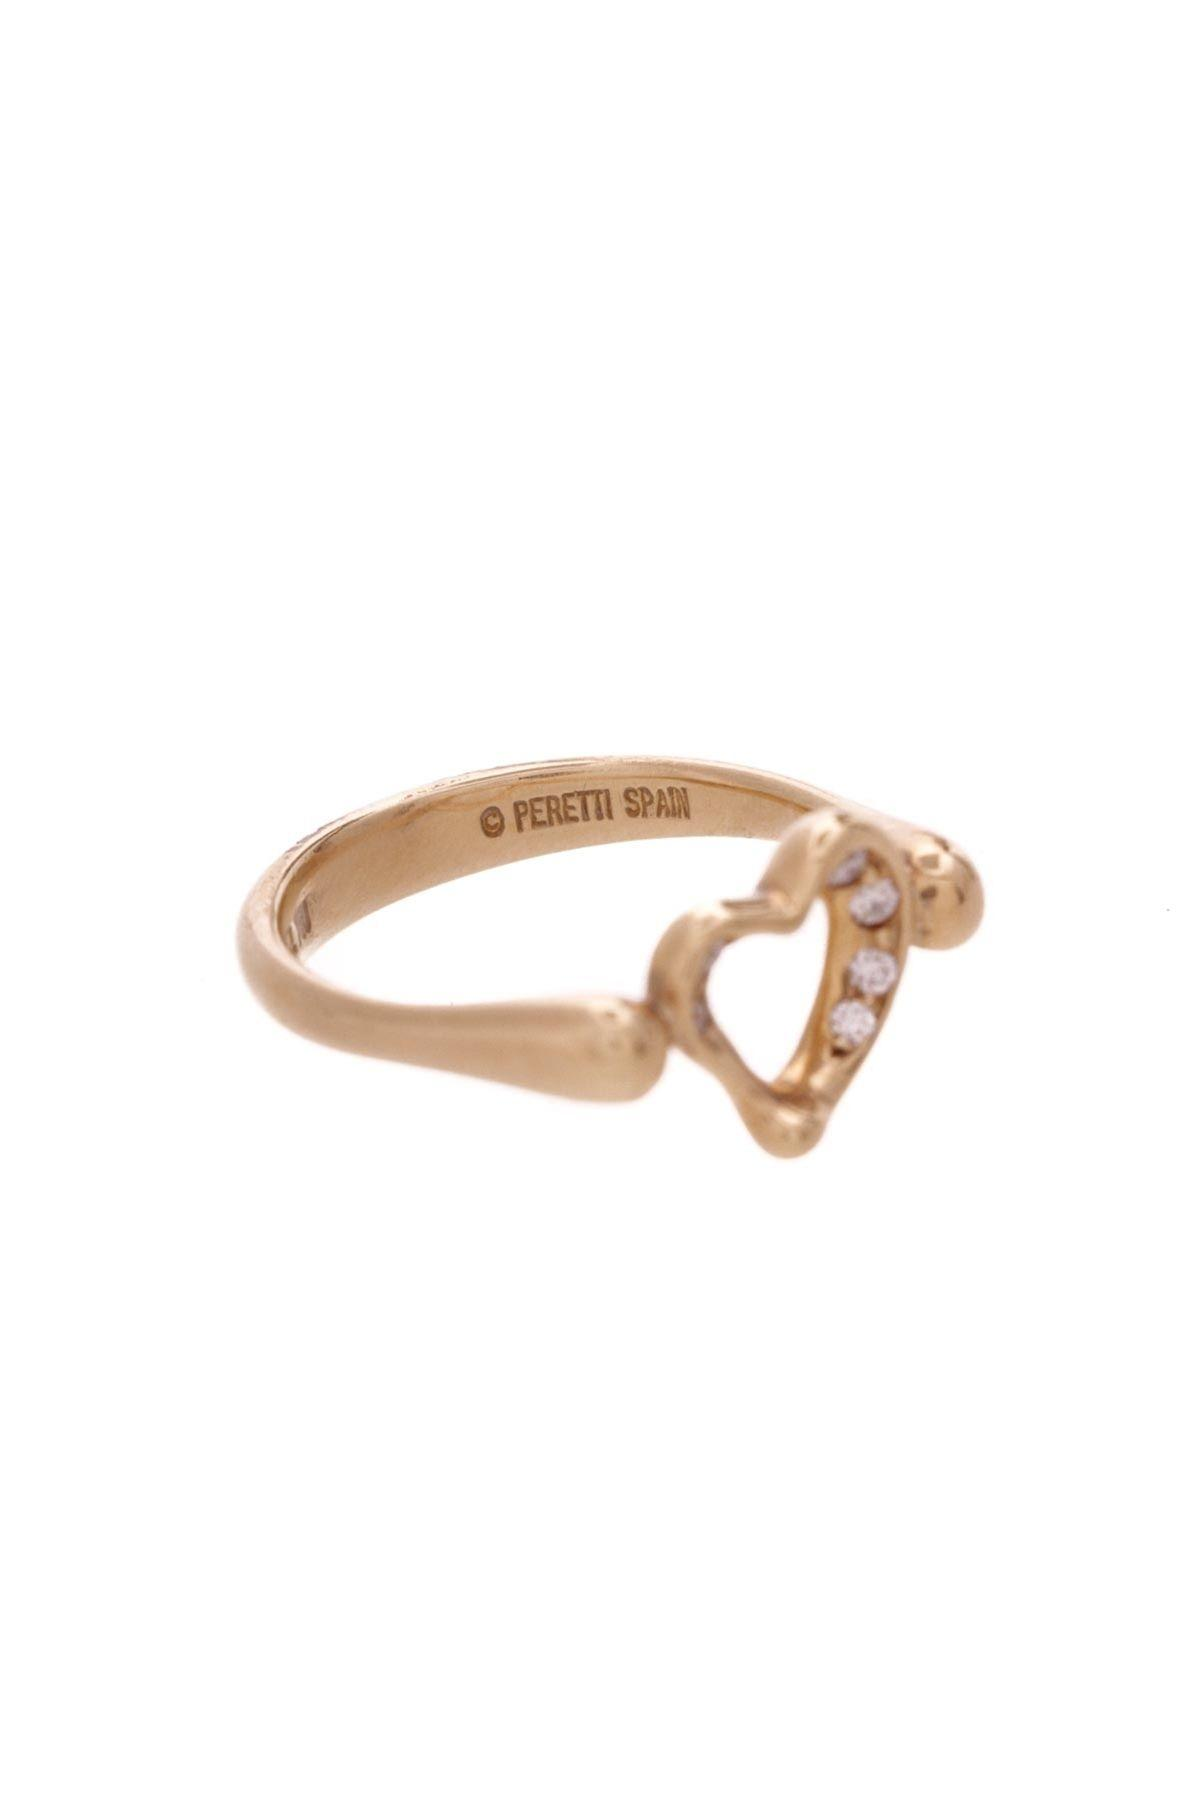 Tiffany & Co Gold 18k Elsa Peretti Diamond Open Heart Ring Tradesy